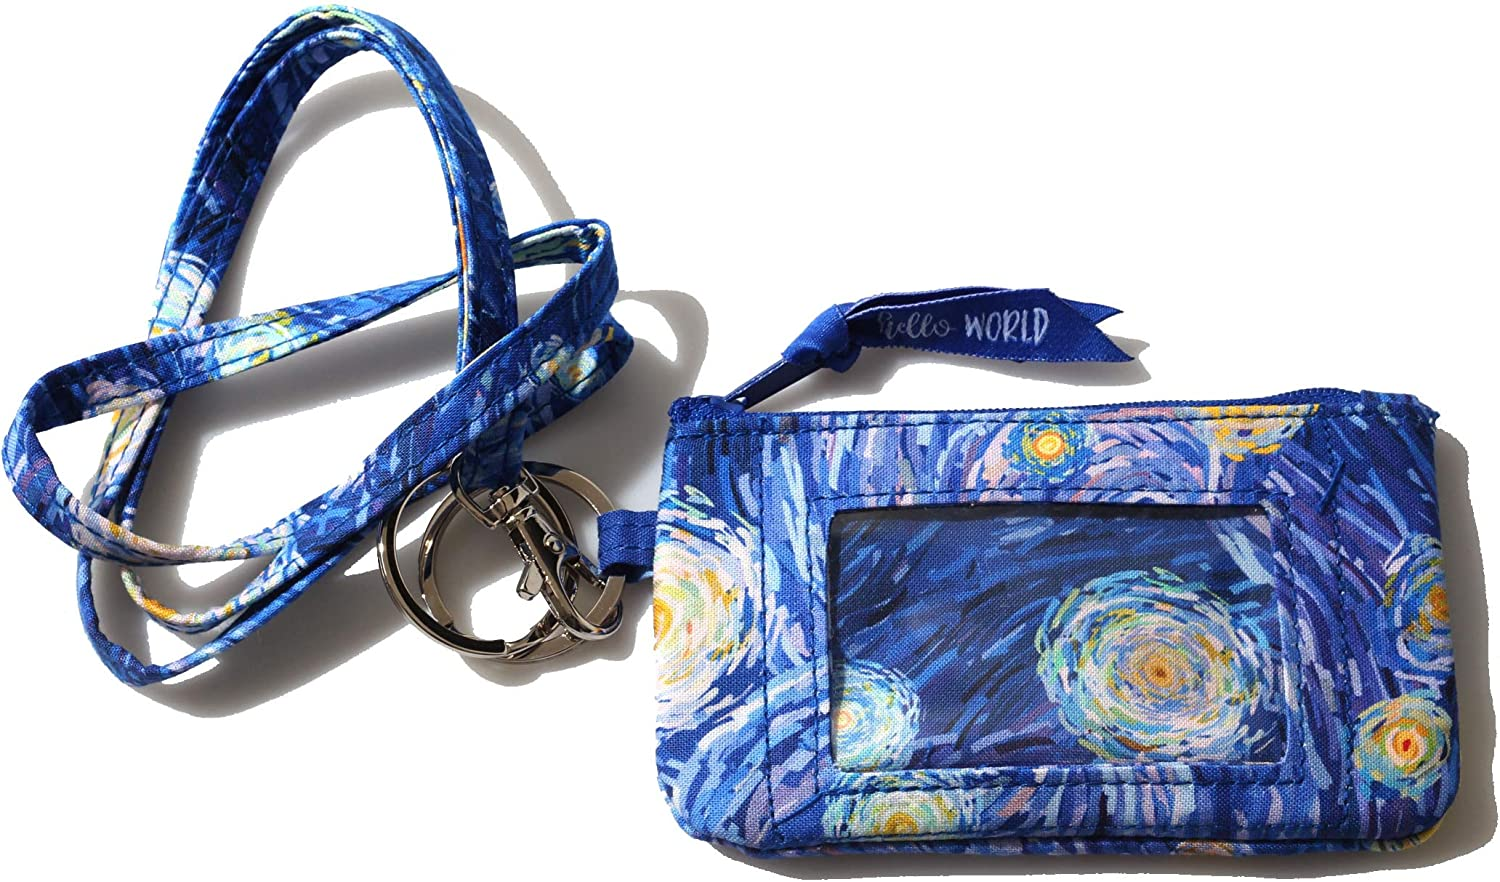 ID Free shipping Case Wallet with Lanyard Zip Sale price Fashion Women's